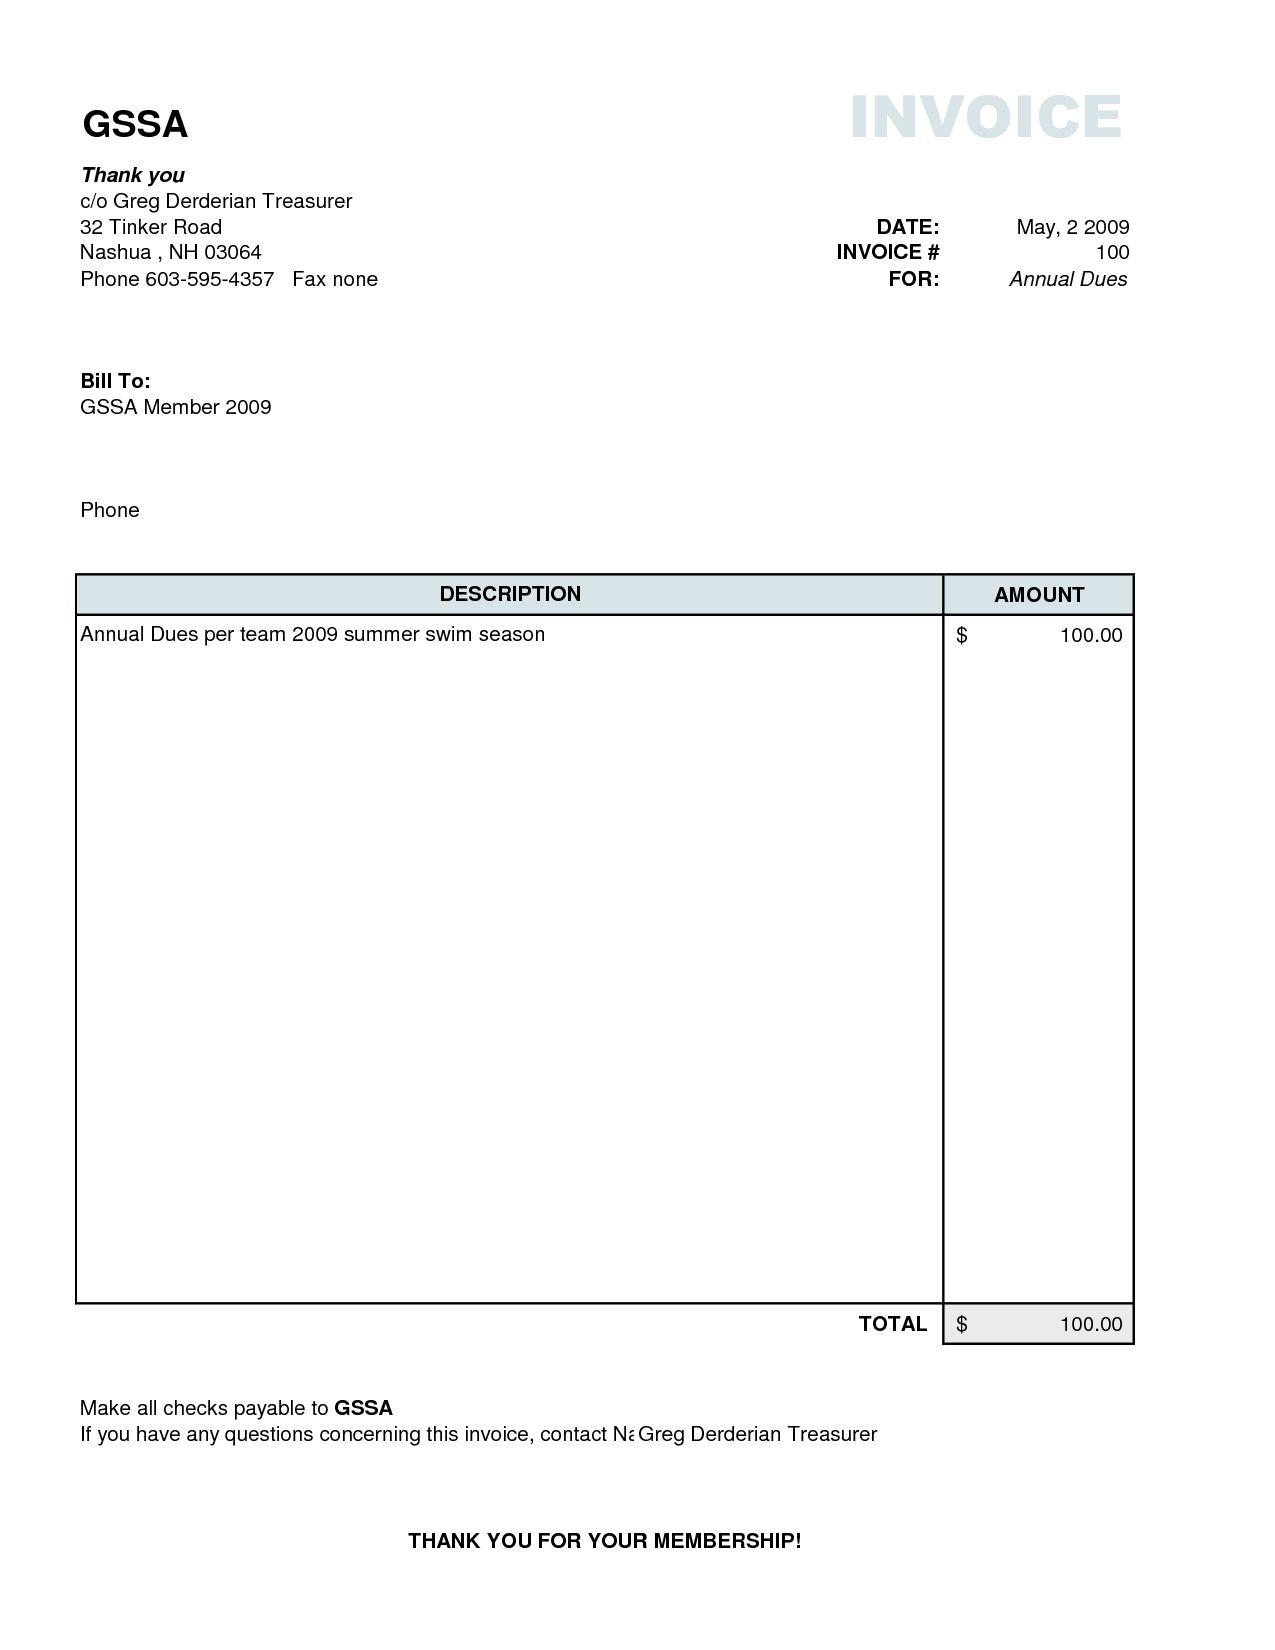 Letter Of Simple Invoice Format In Excel With Simple Invoice Format In Excel Form